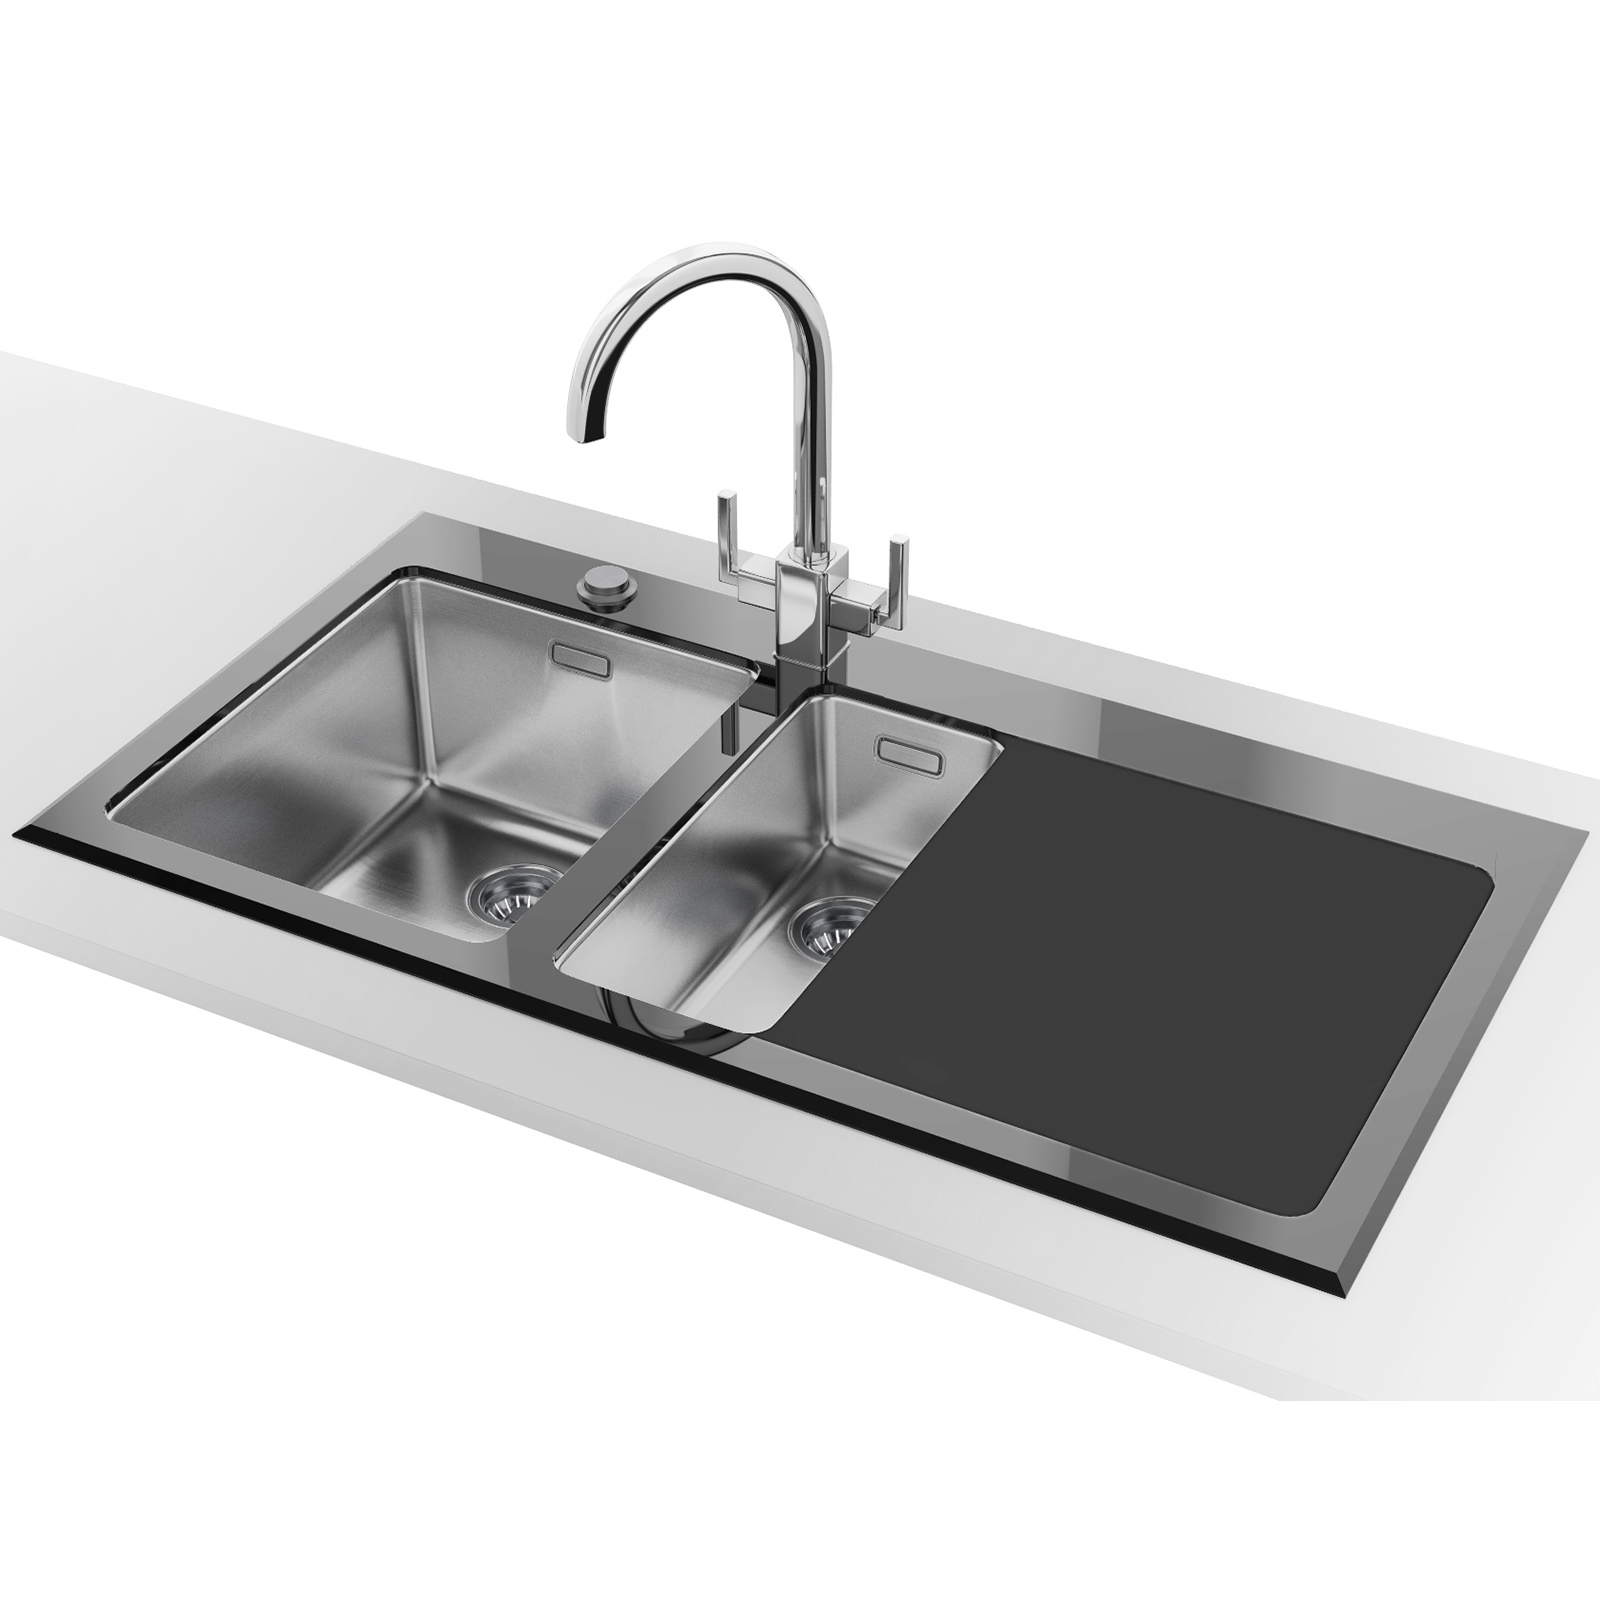 Black Glass Sink : ... glass kitchen sink black glass kitchen sink 1 5 bowl kitchen sink sink